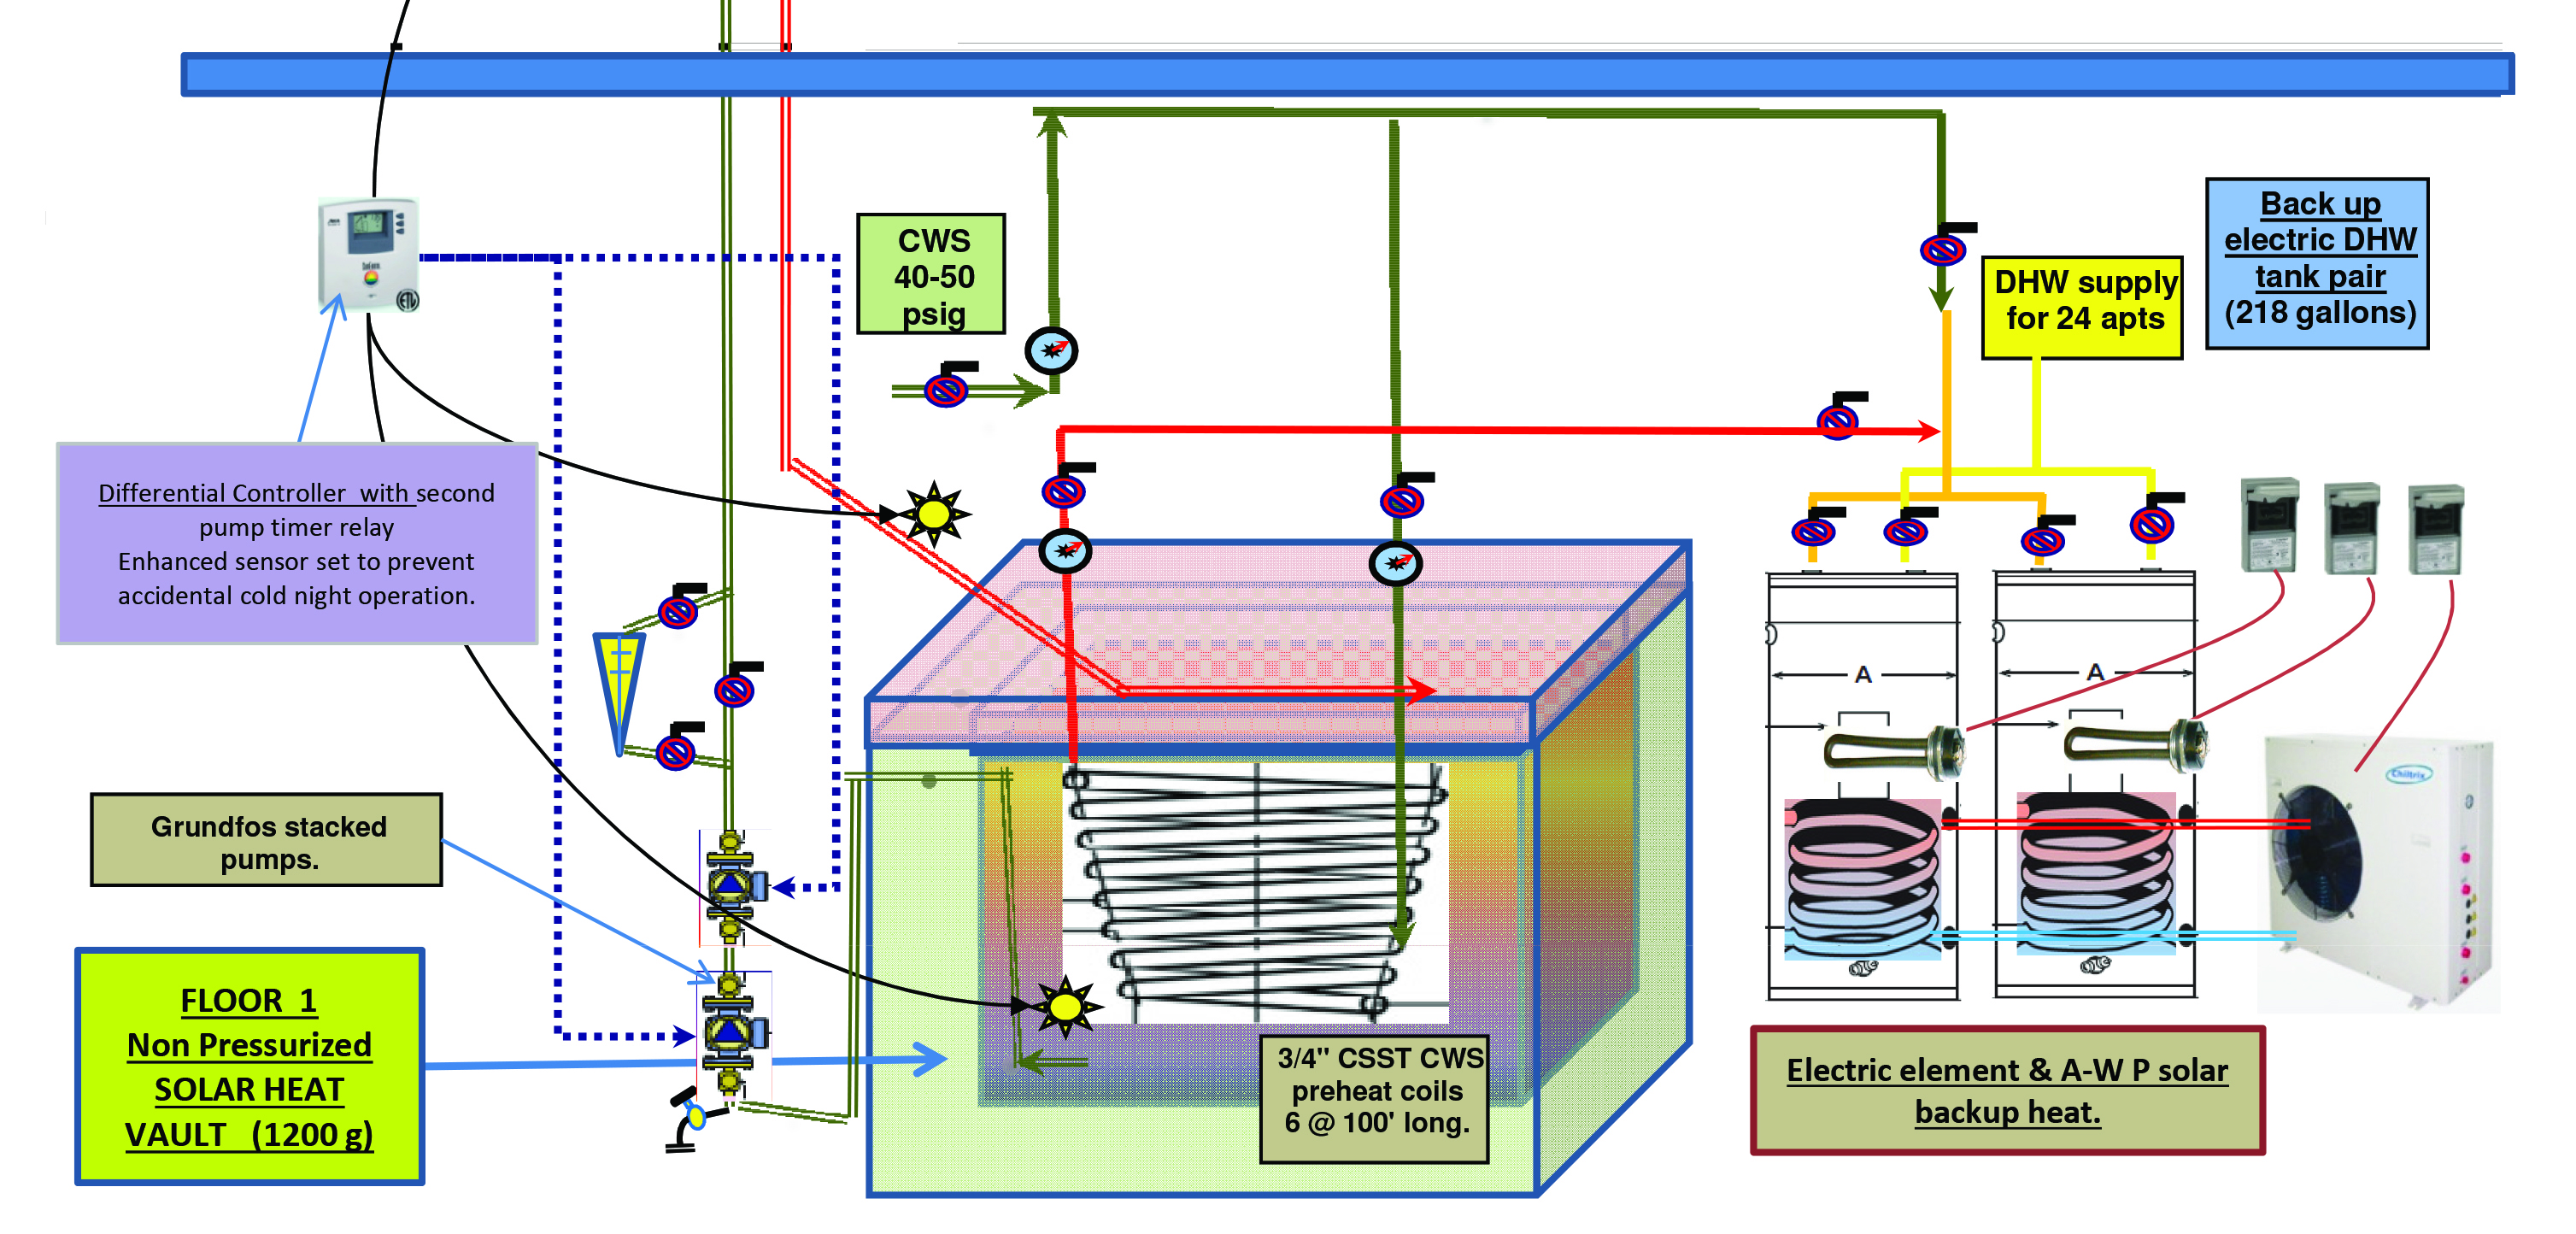 simple circuit diagram hot water solar thermal and heat pump hot water hybrid 2020 02 03 phcppros  solar thermal and heat pump hot water